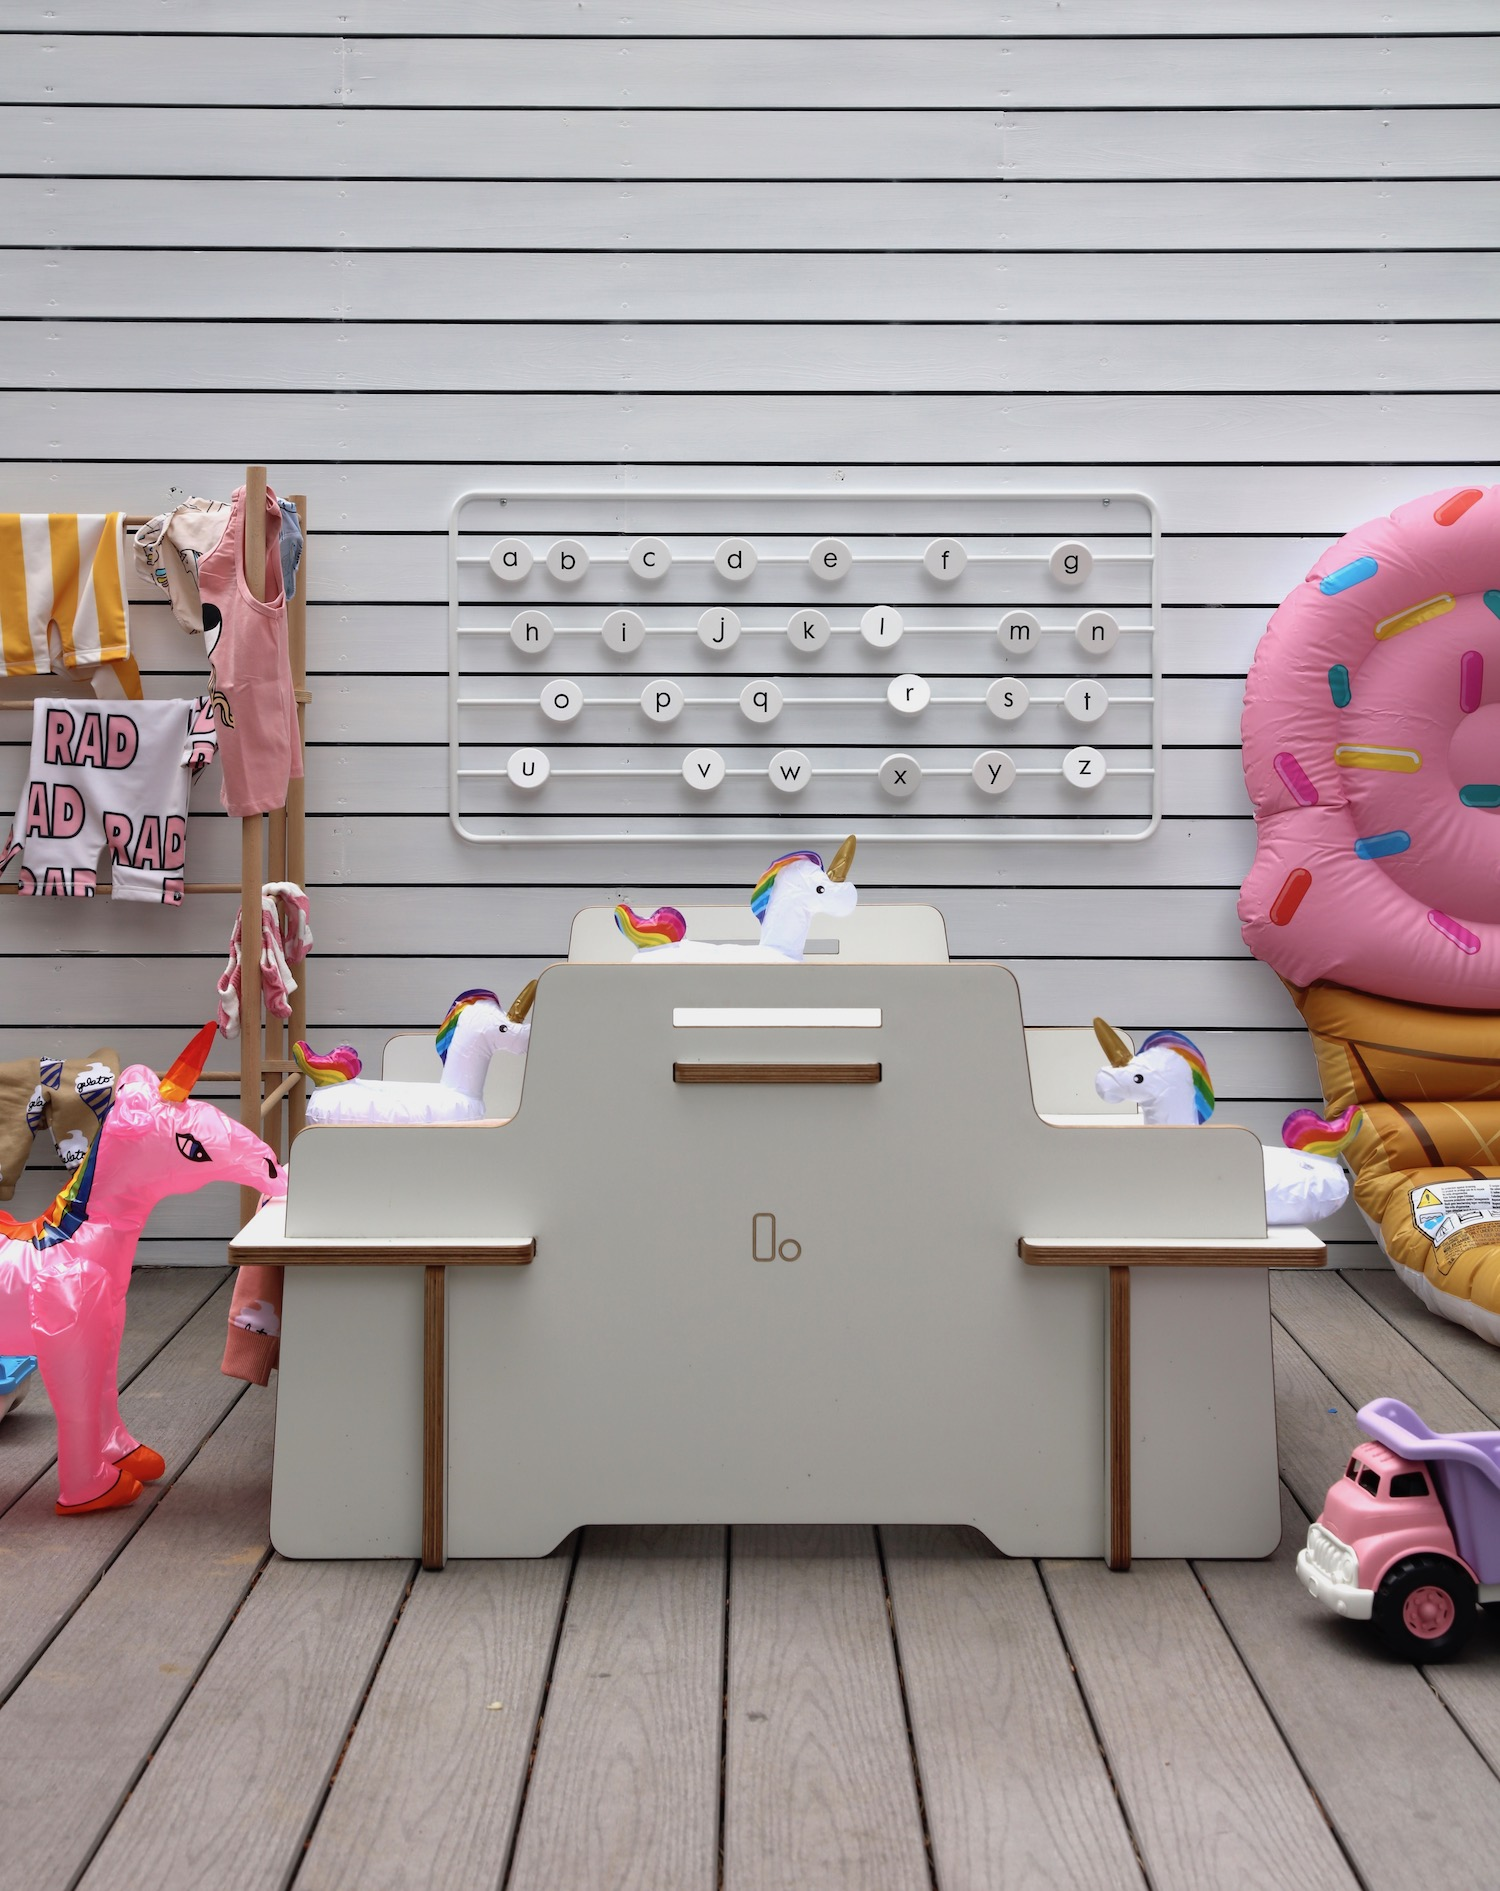 Lemodi_picnic_table_unicorns_diddle_tinkers